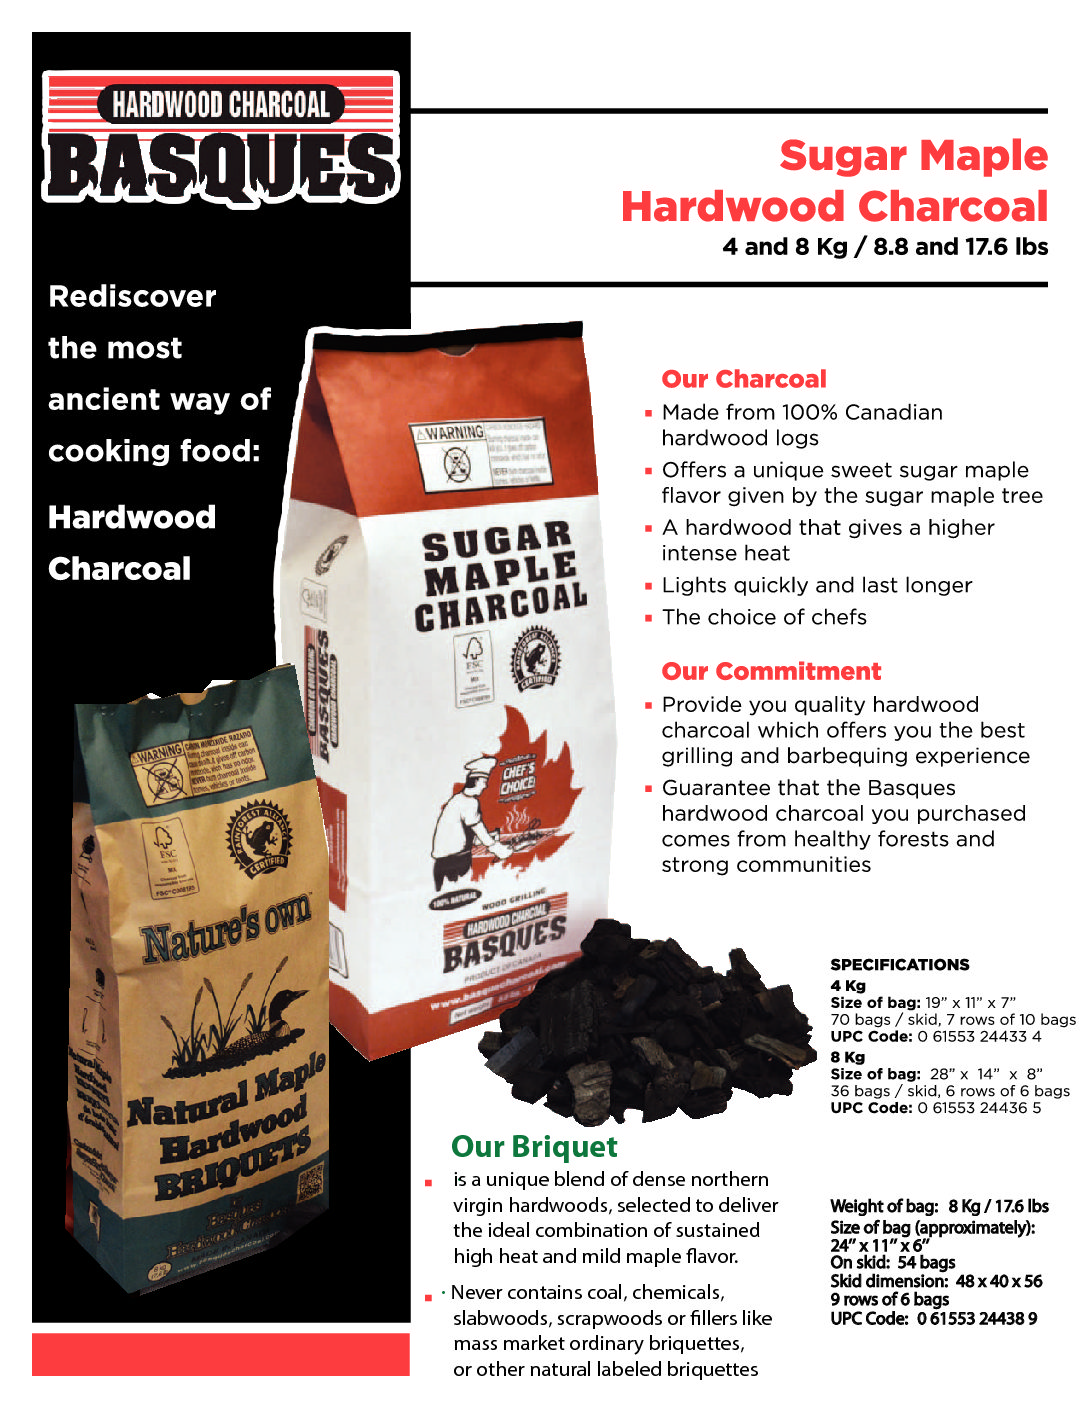 Sugar Maple Charcoal